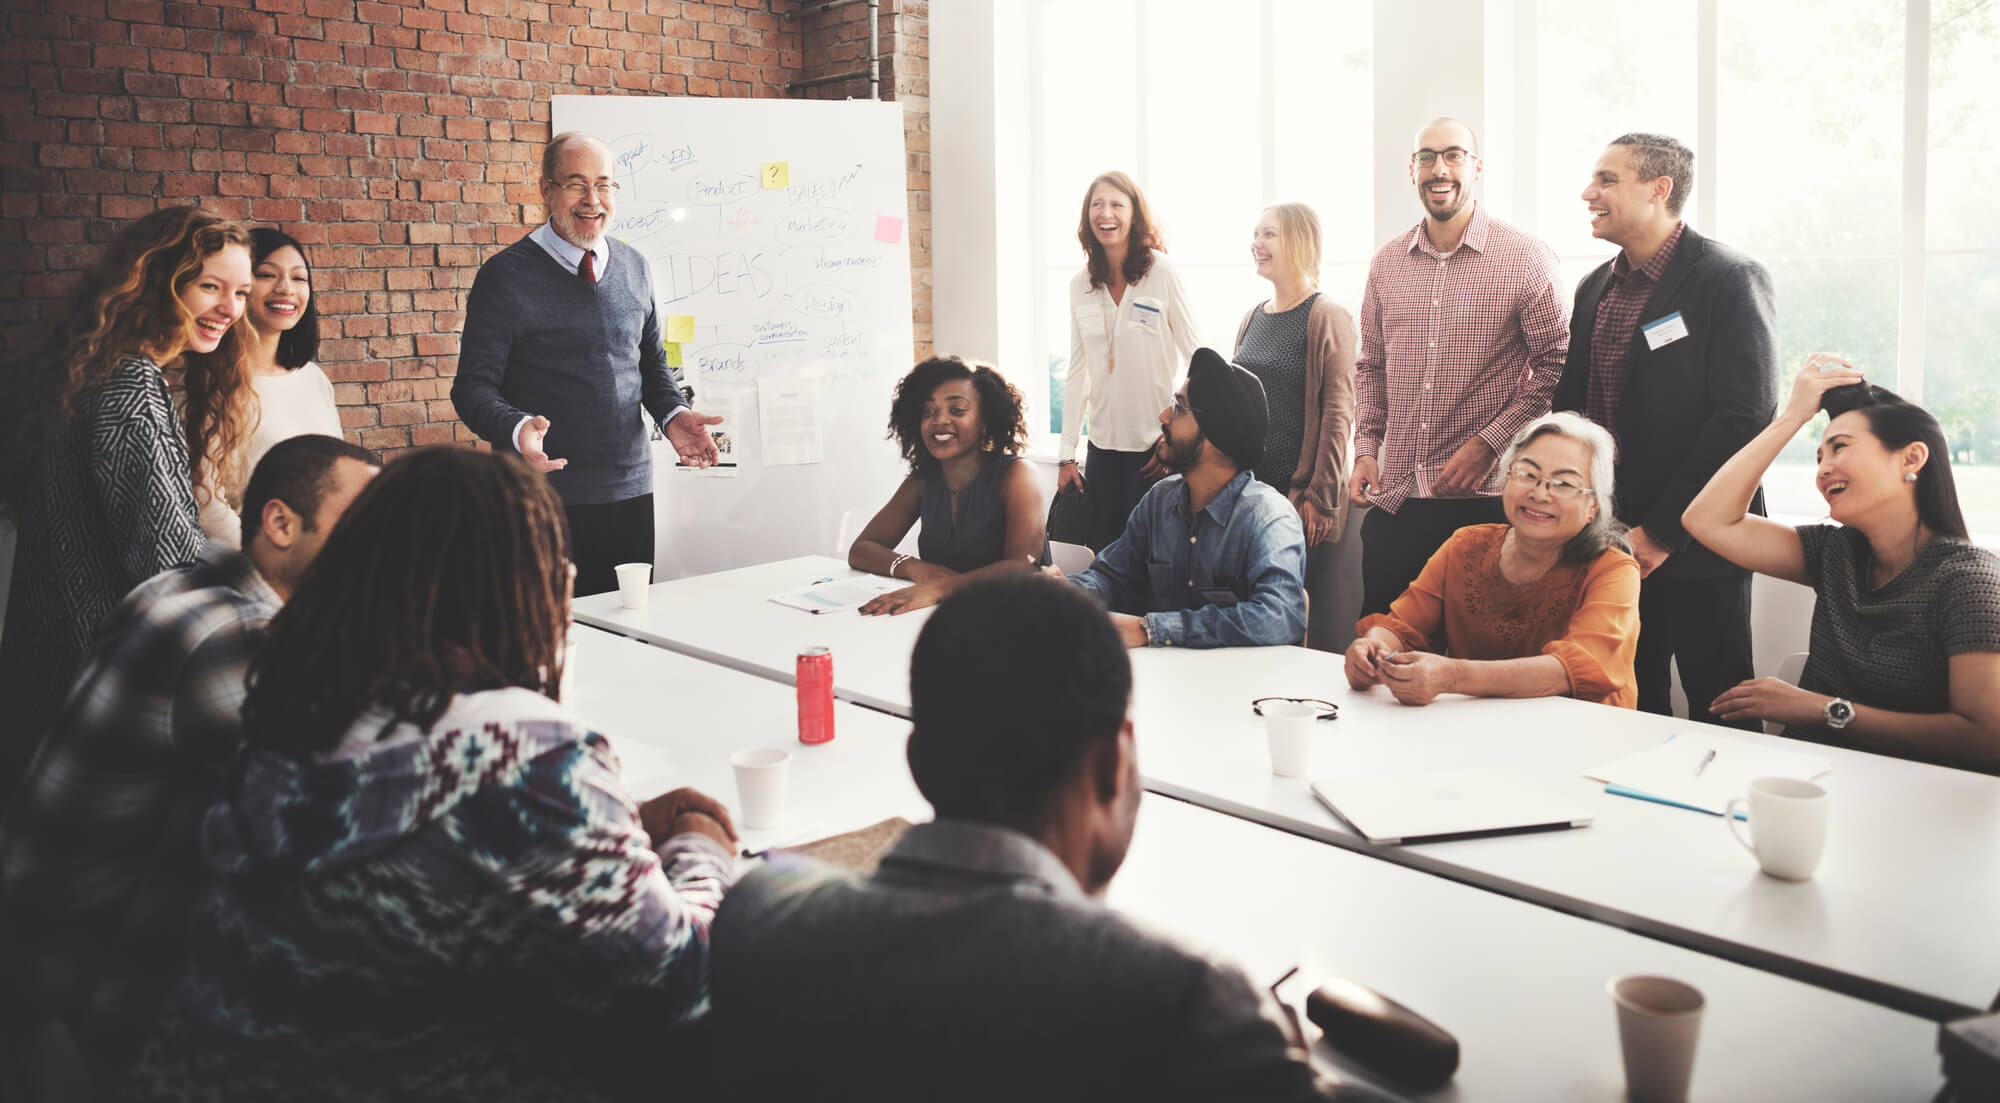 Leaders, This is How to Help Ensure a Productive Work Culture